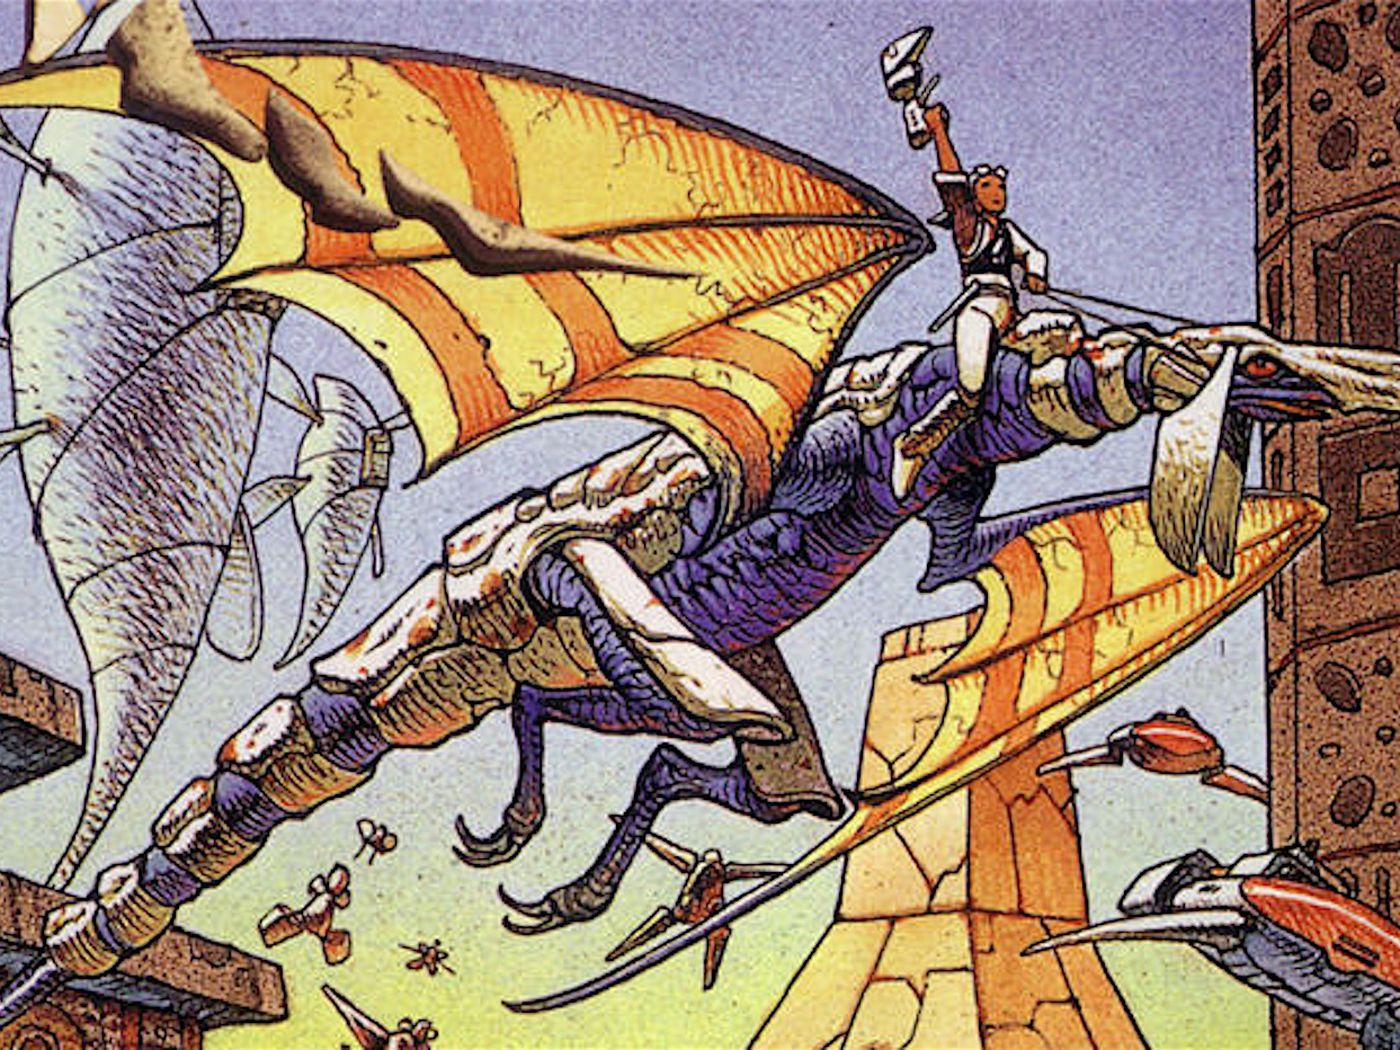 The long-awaited Panzer Dragoon II Zwei remake is finally coming out this year - Destructoid